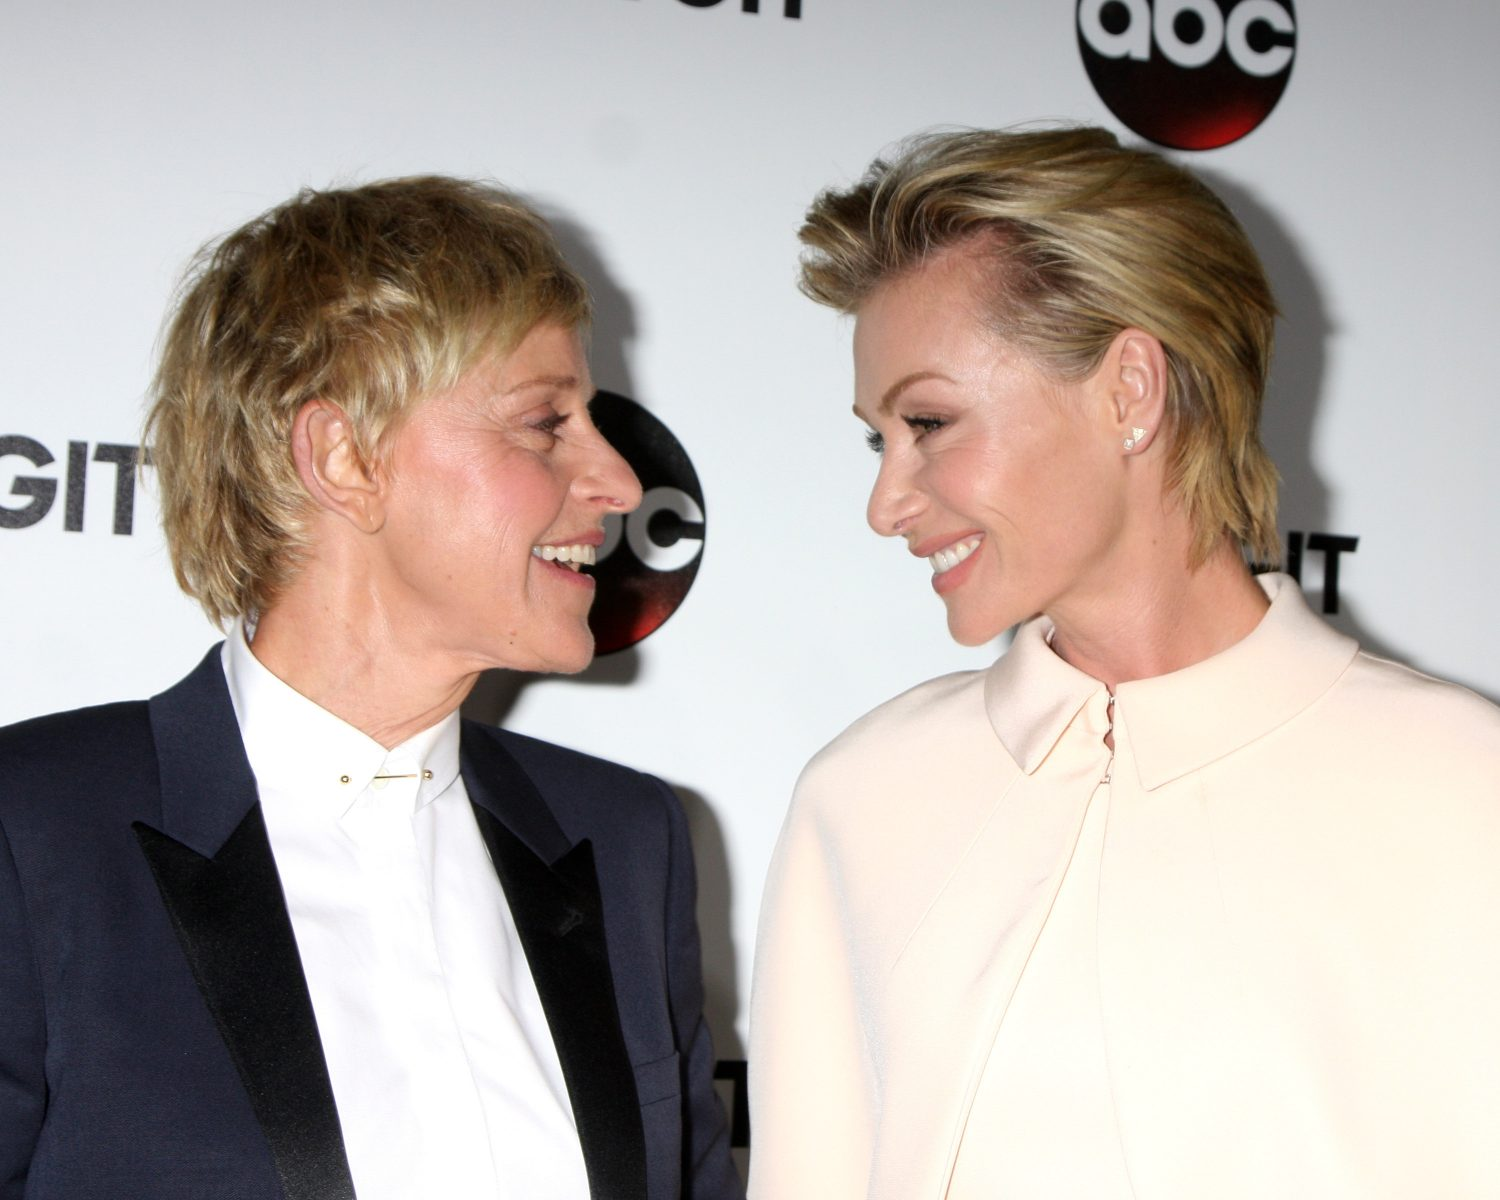 Ellen Degeneres And Portia De Rossi Marked Their 9th Wedding Anniversary With Sweet Messages See The Photo Here Shutterstock